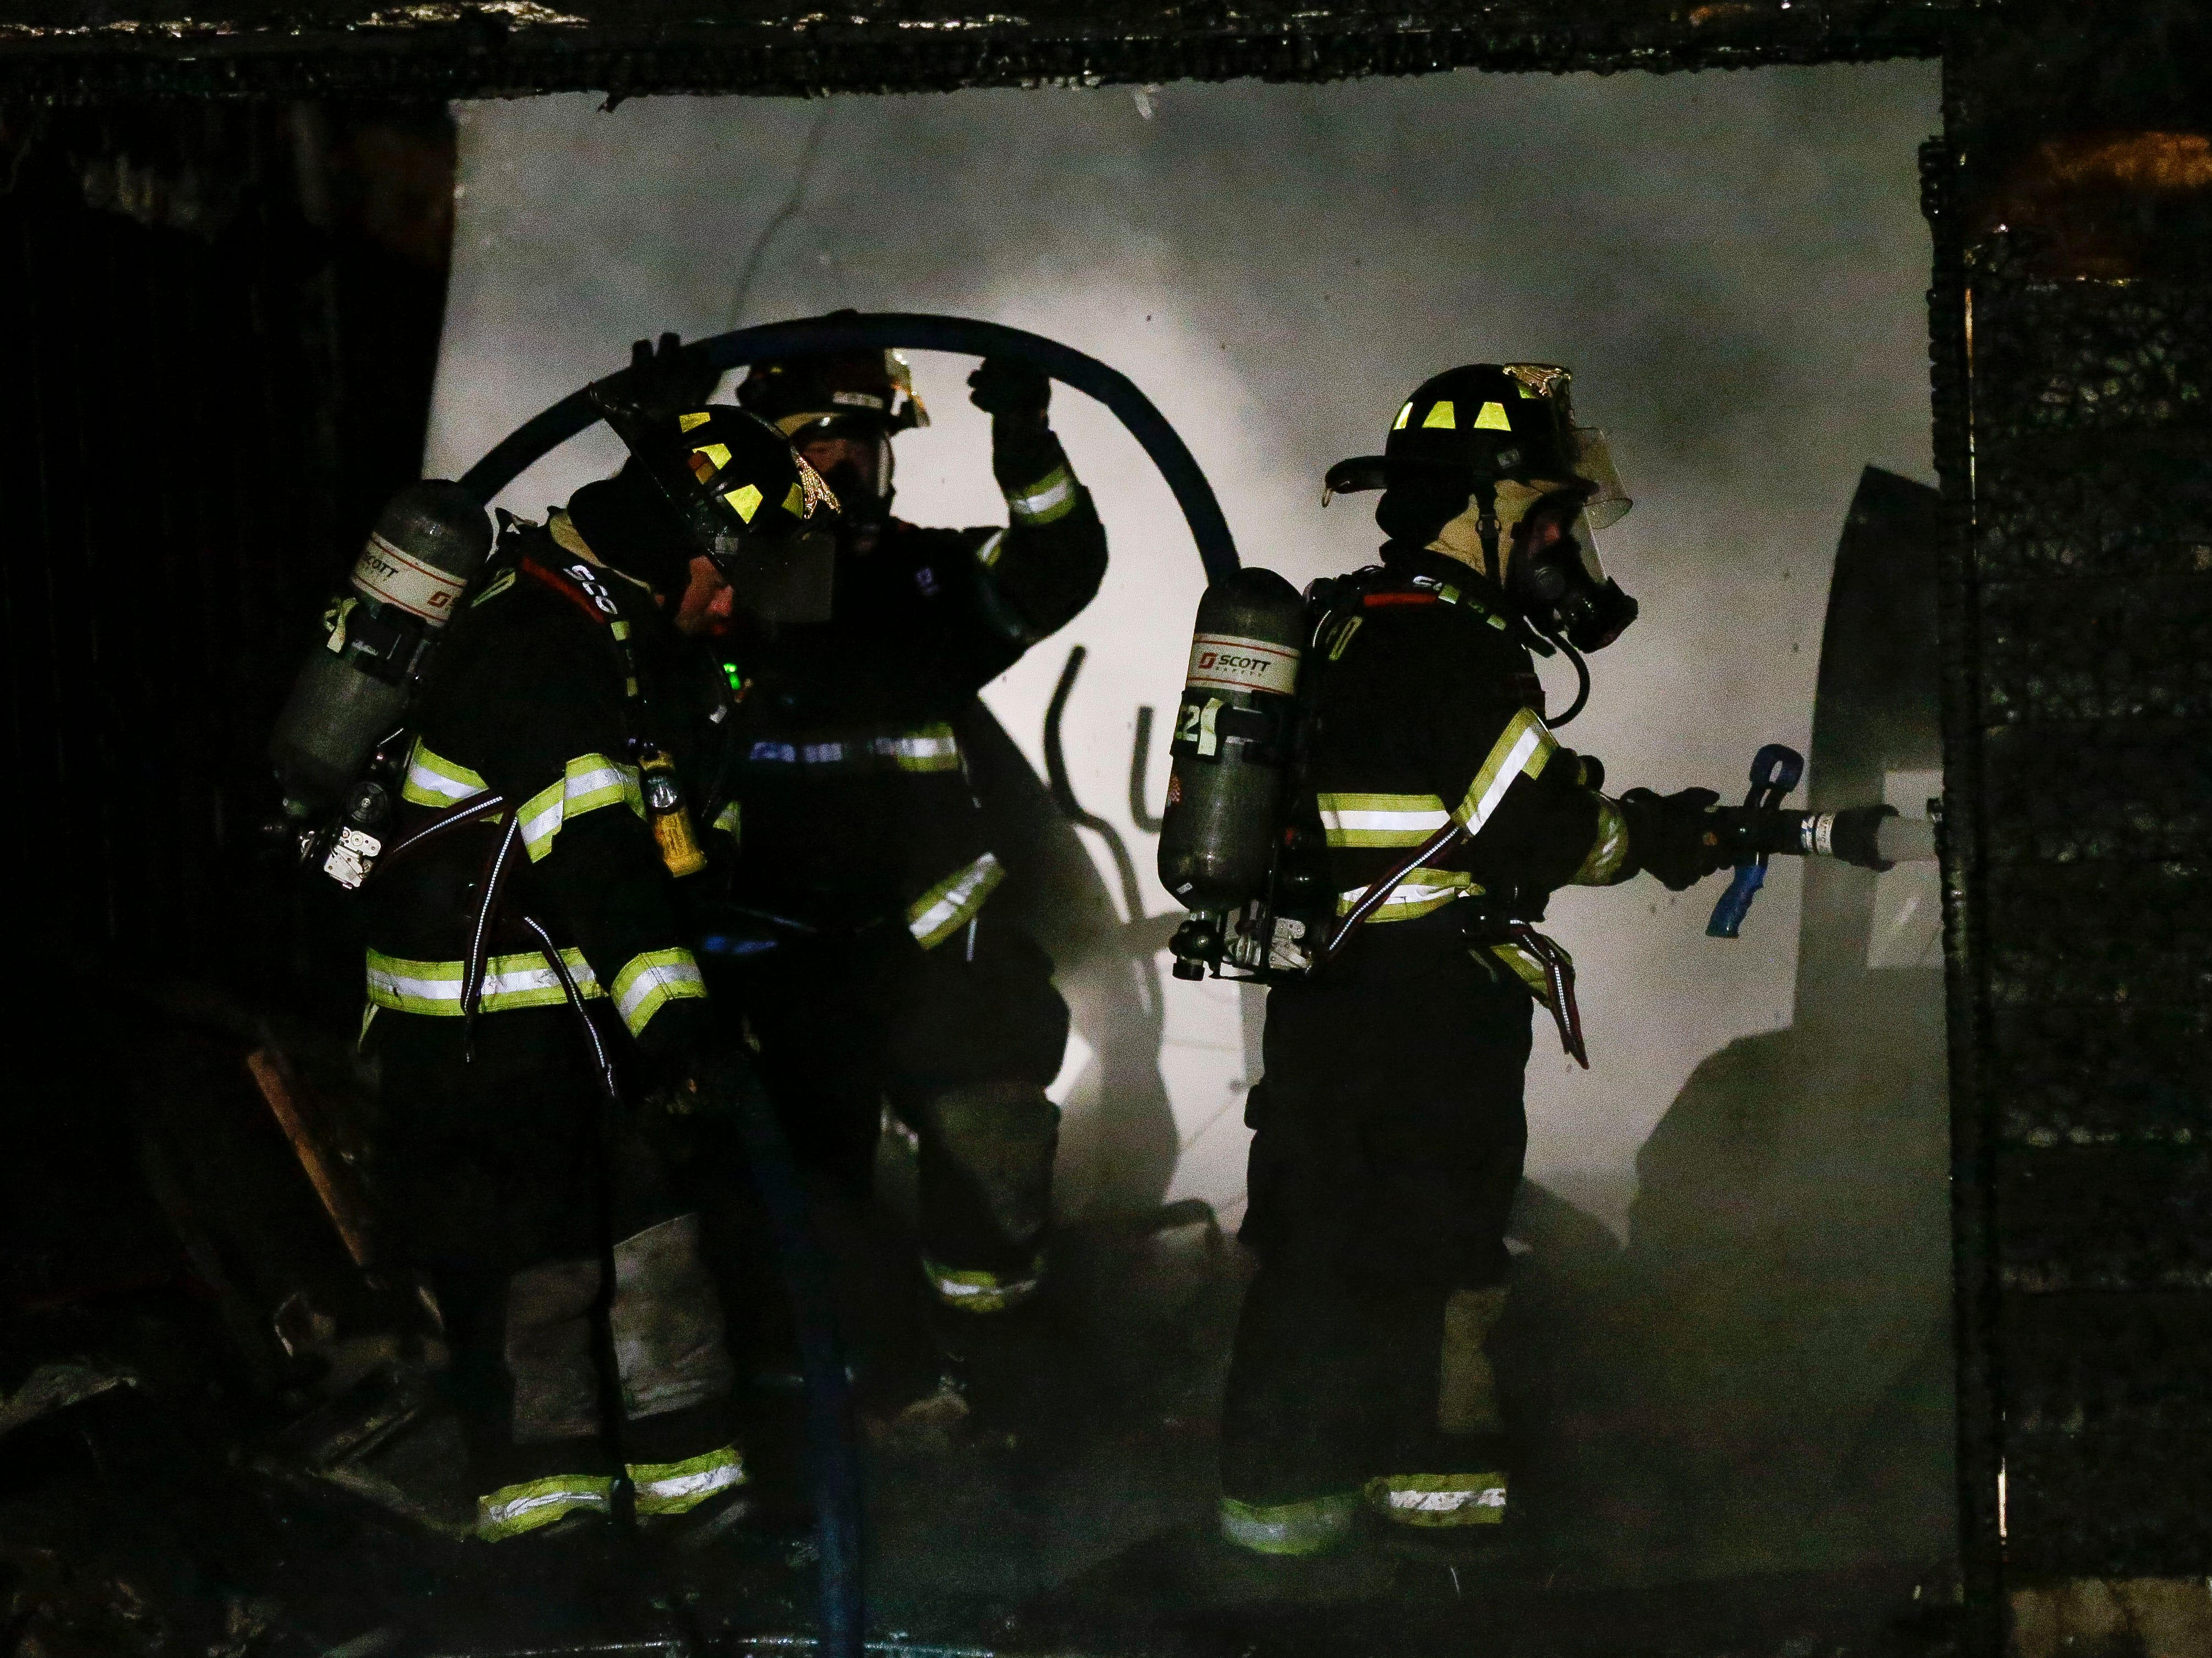 Fire crews work to put out a fire on Thursday, January 17, 2019, at 1235 Meehan Ave. off Highway 54 outside Plover, Wis. Tork Mason/USA TODAY NETWORK-Wisconsin